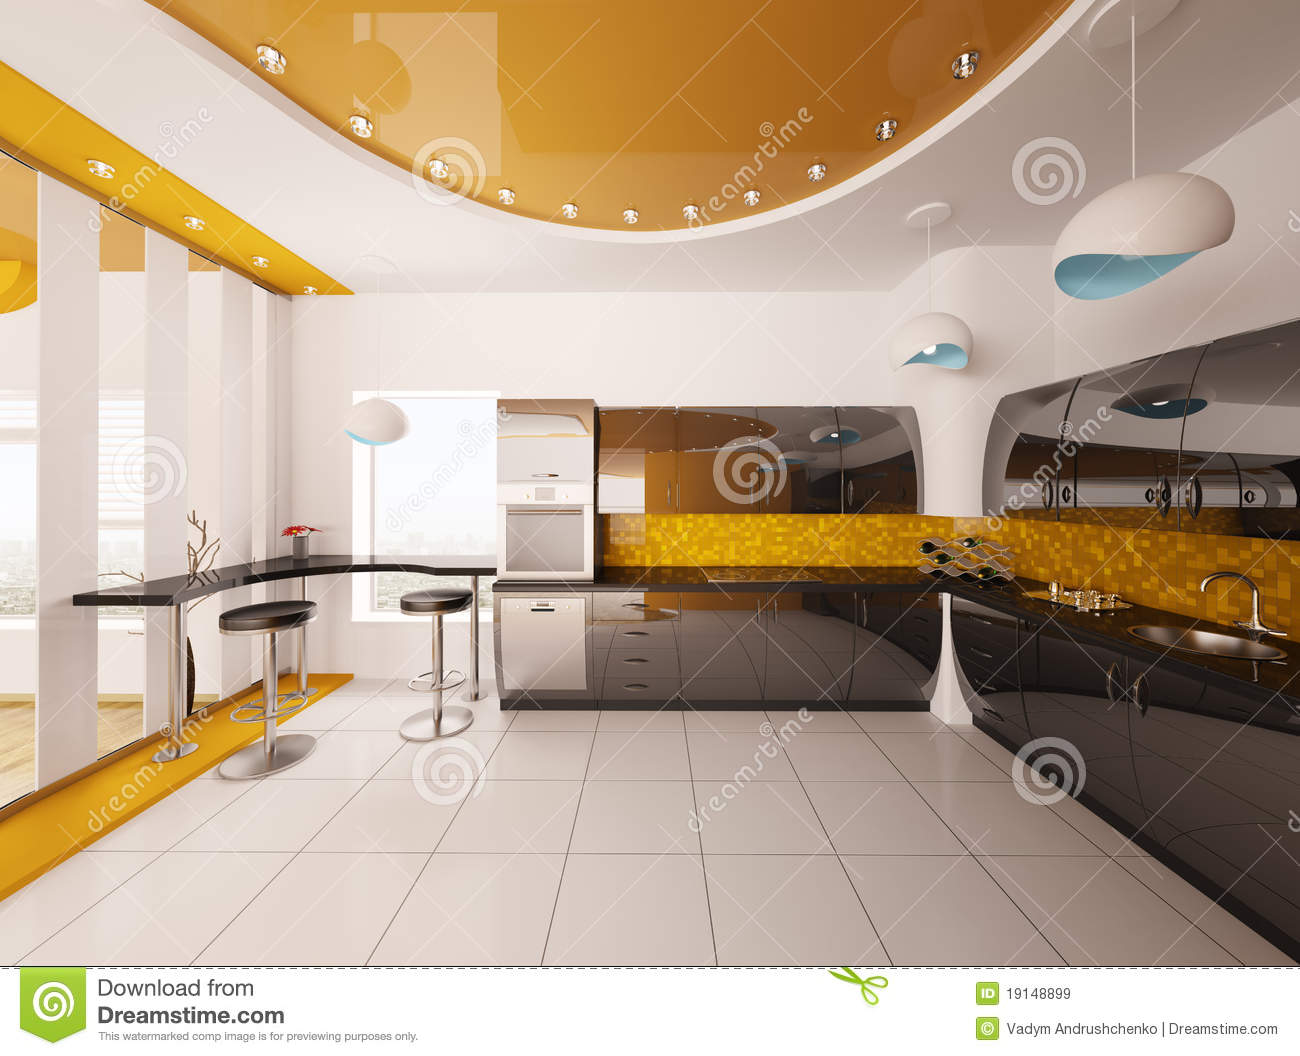 Interior design of modern kitchen 3d render stock for 3d interior design online